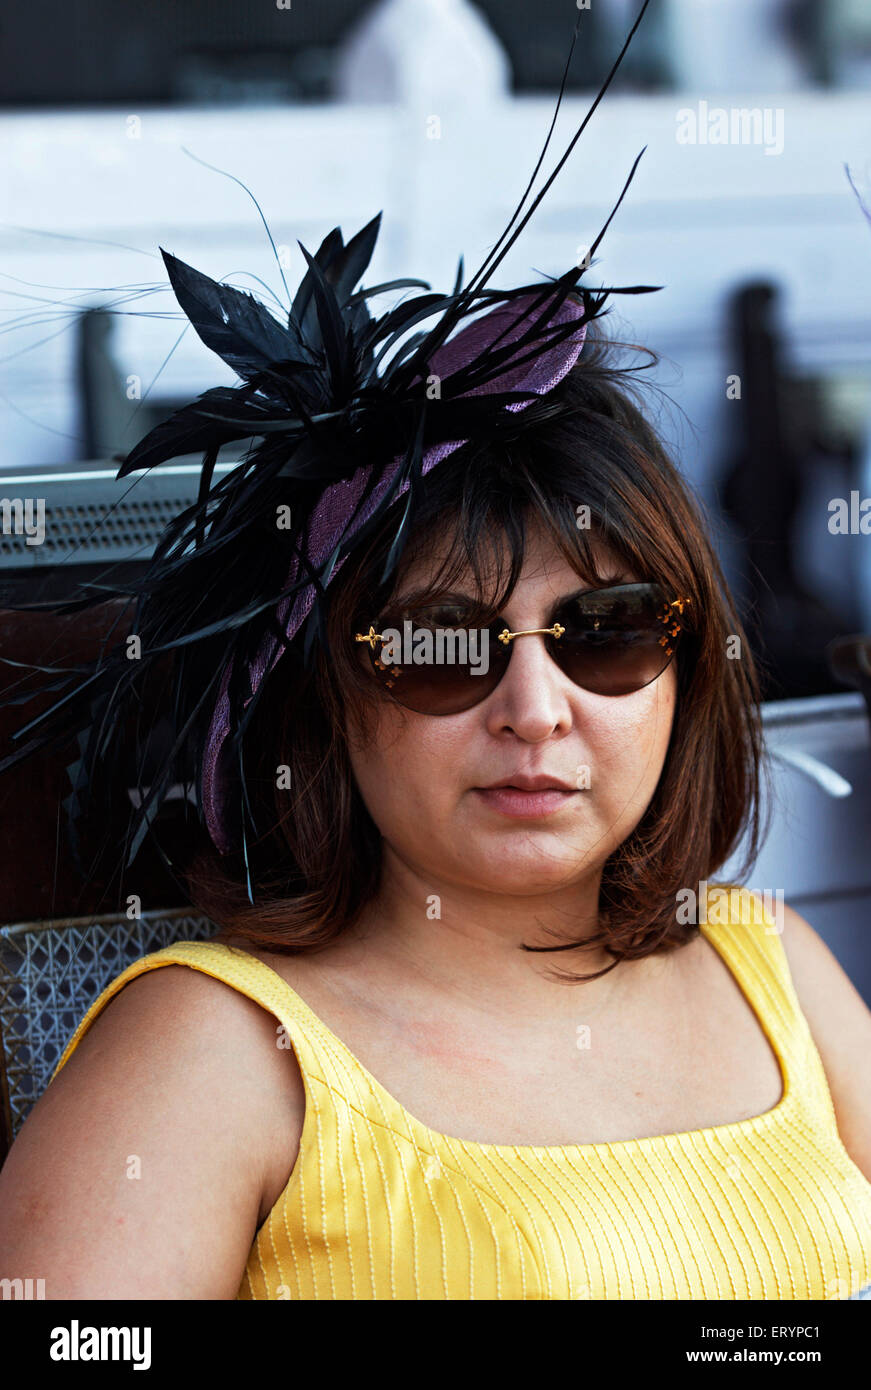 Well known poonawala family member   ; India NO MR 22 March 2009 - Stock Image